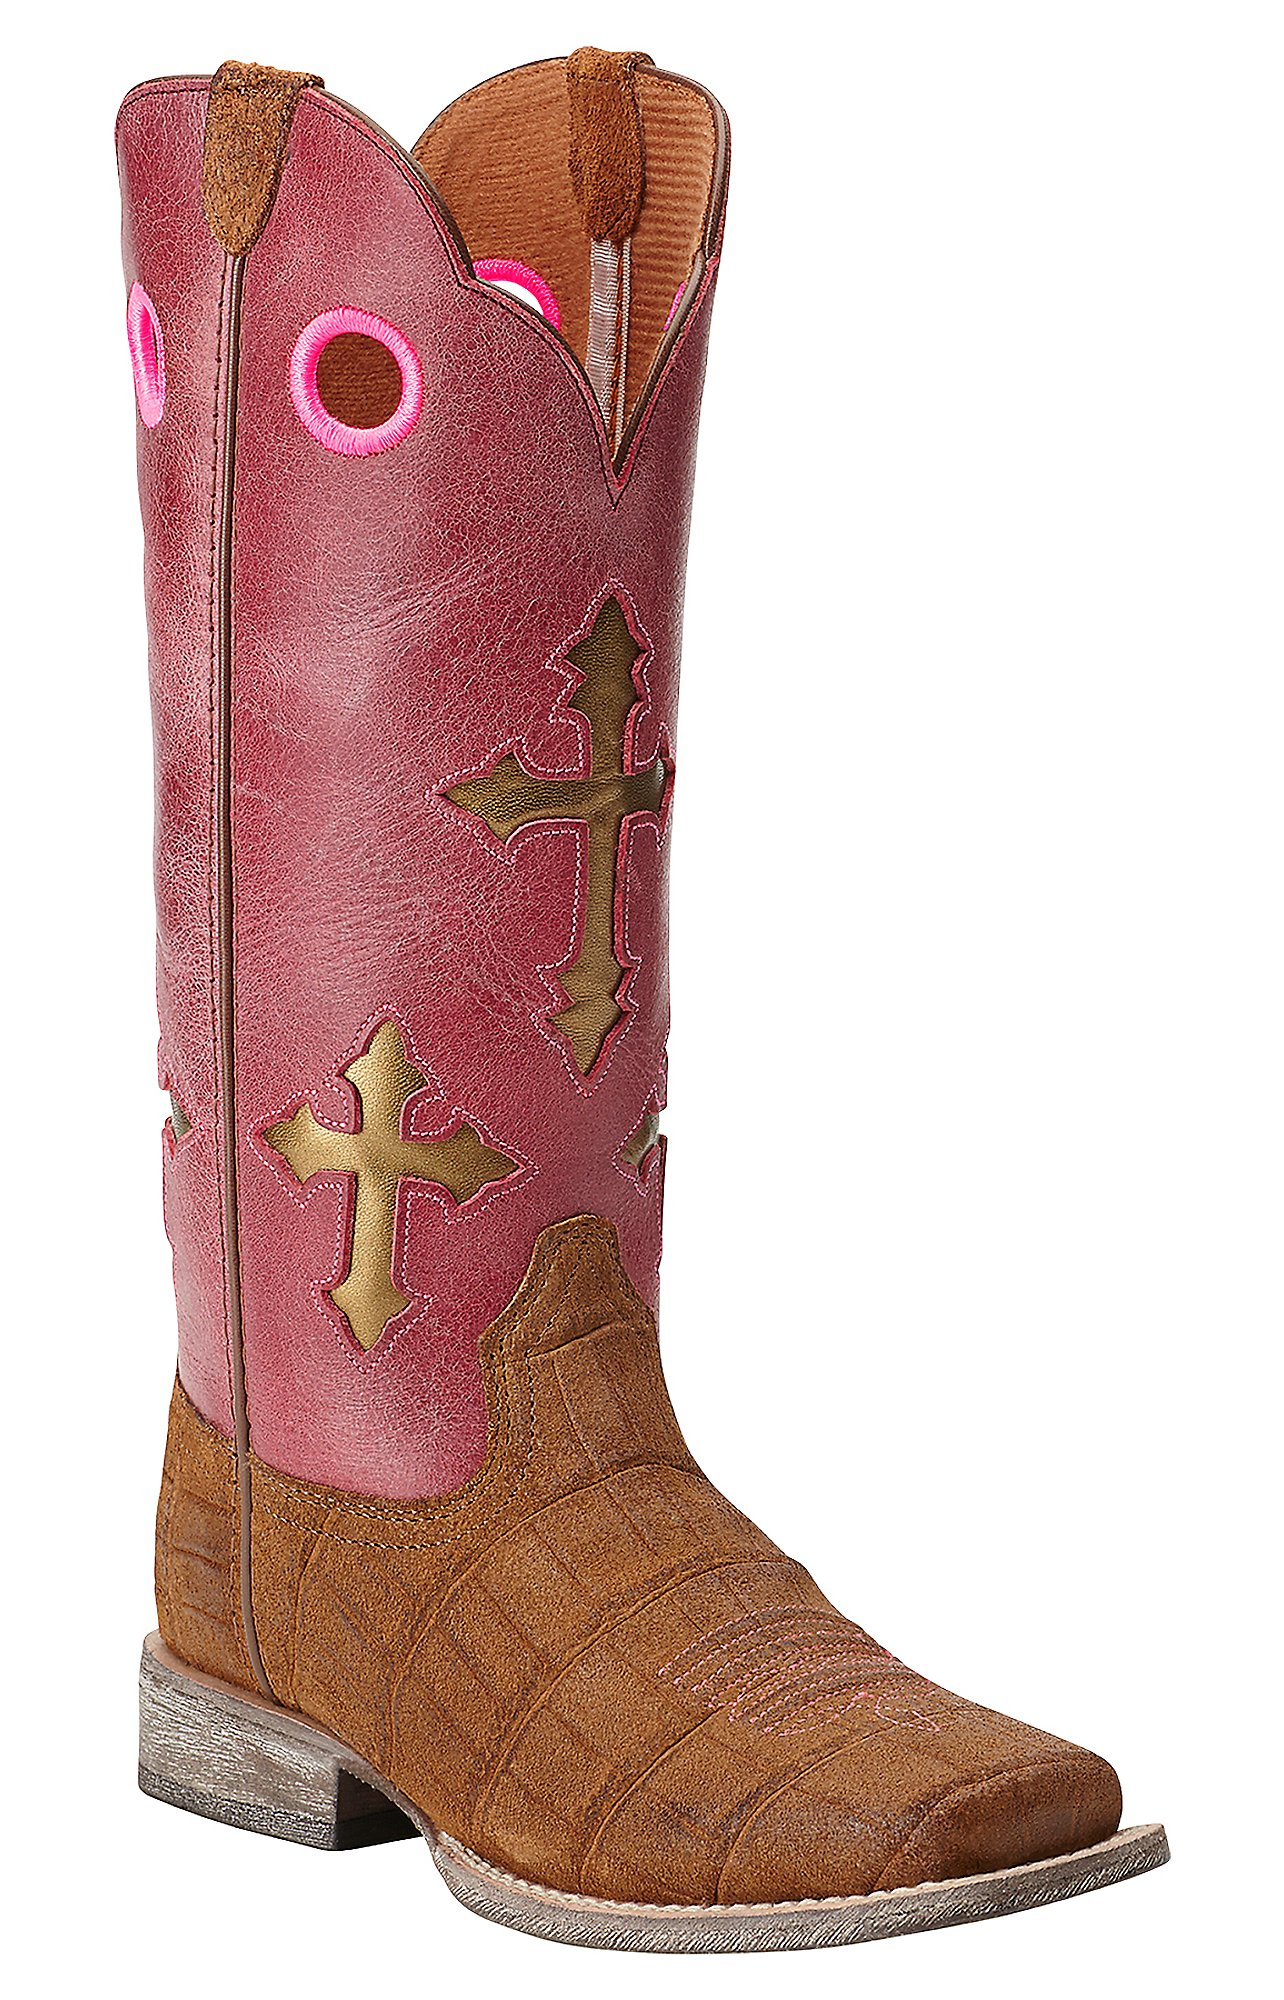 Ariat Kids Ranchero Distressed Brown Gator Print with Watermelon ...